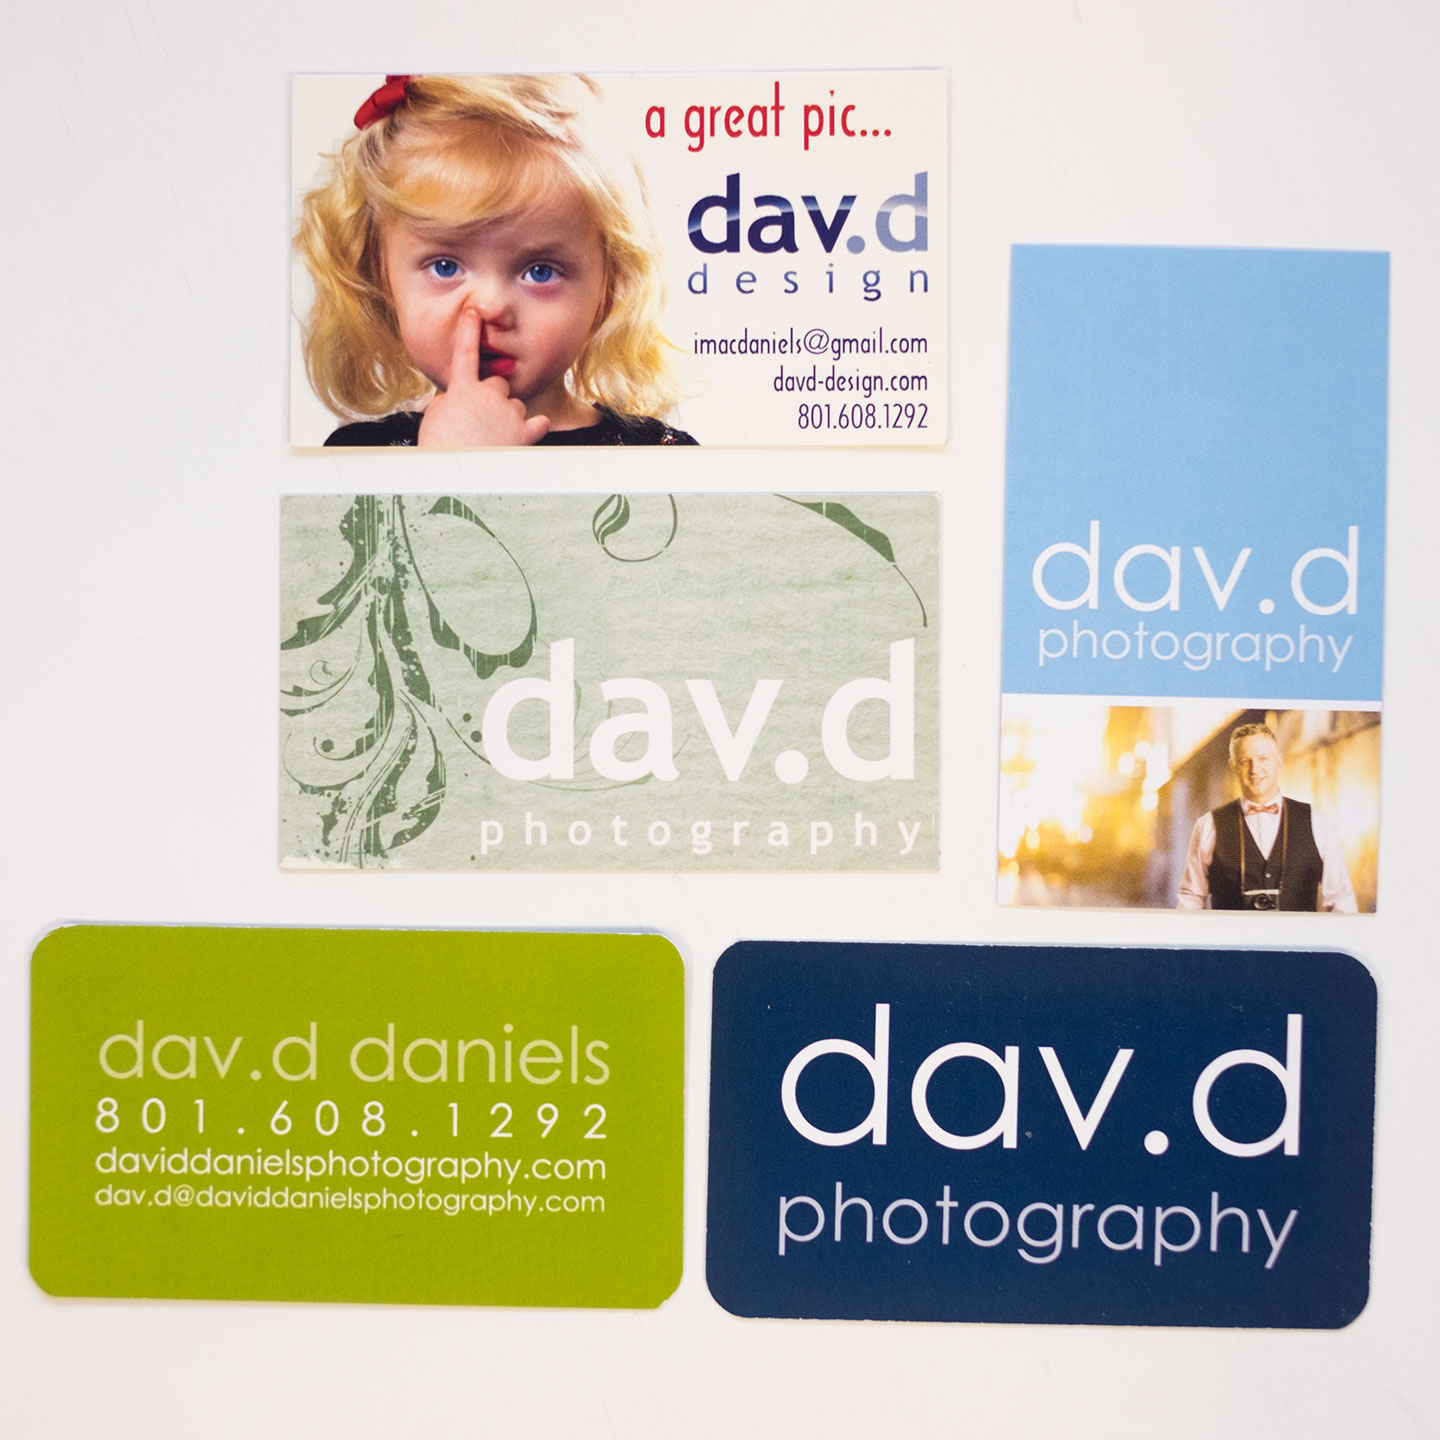 dav.d photograph business cards